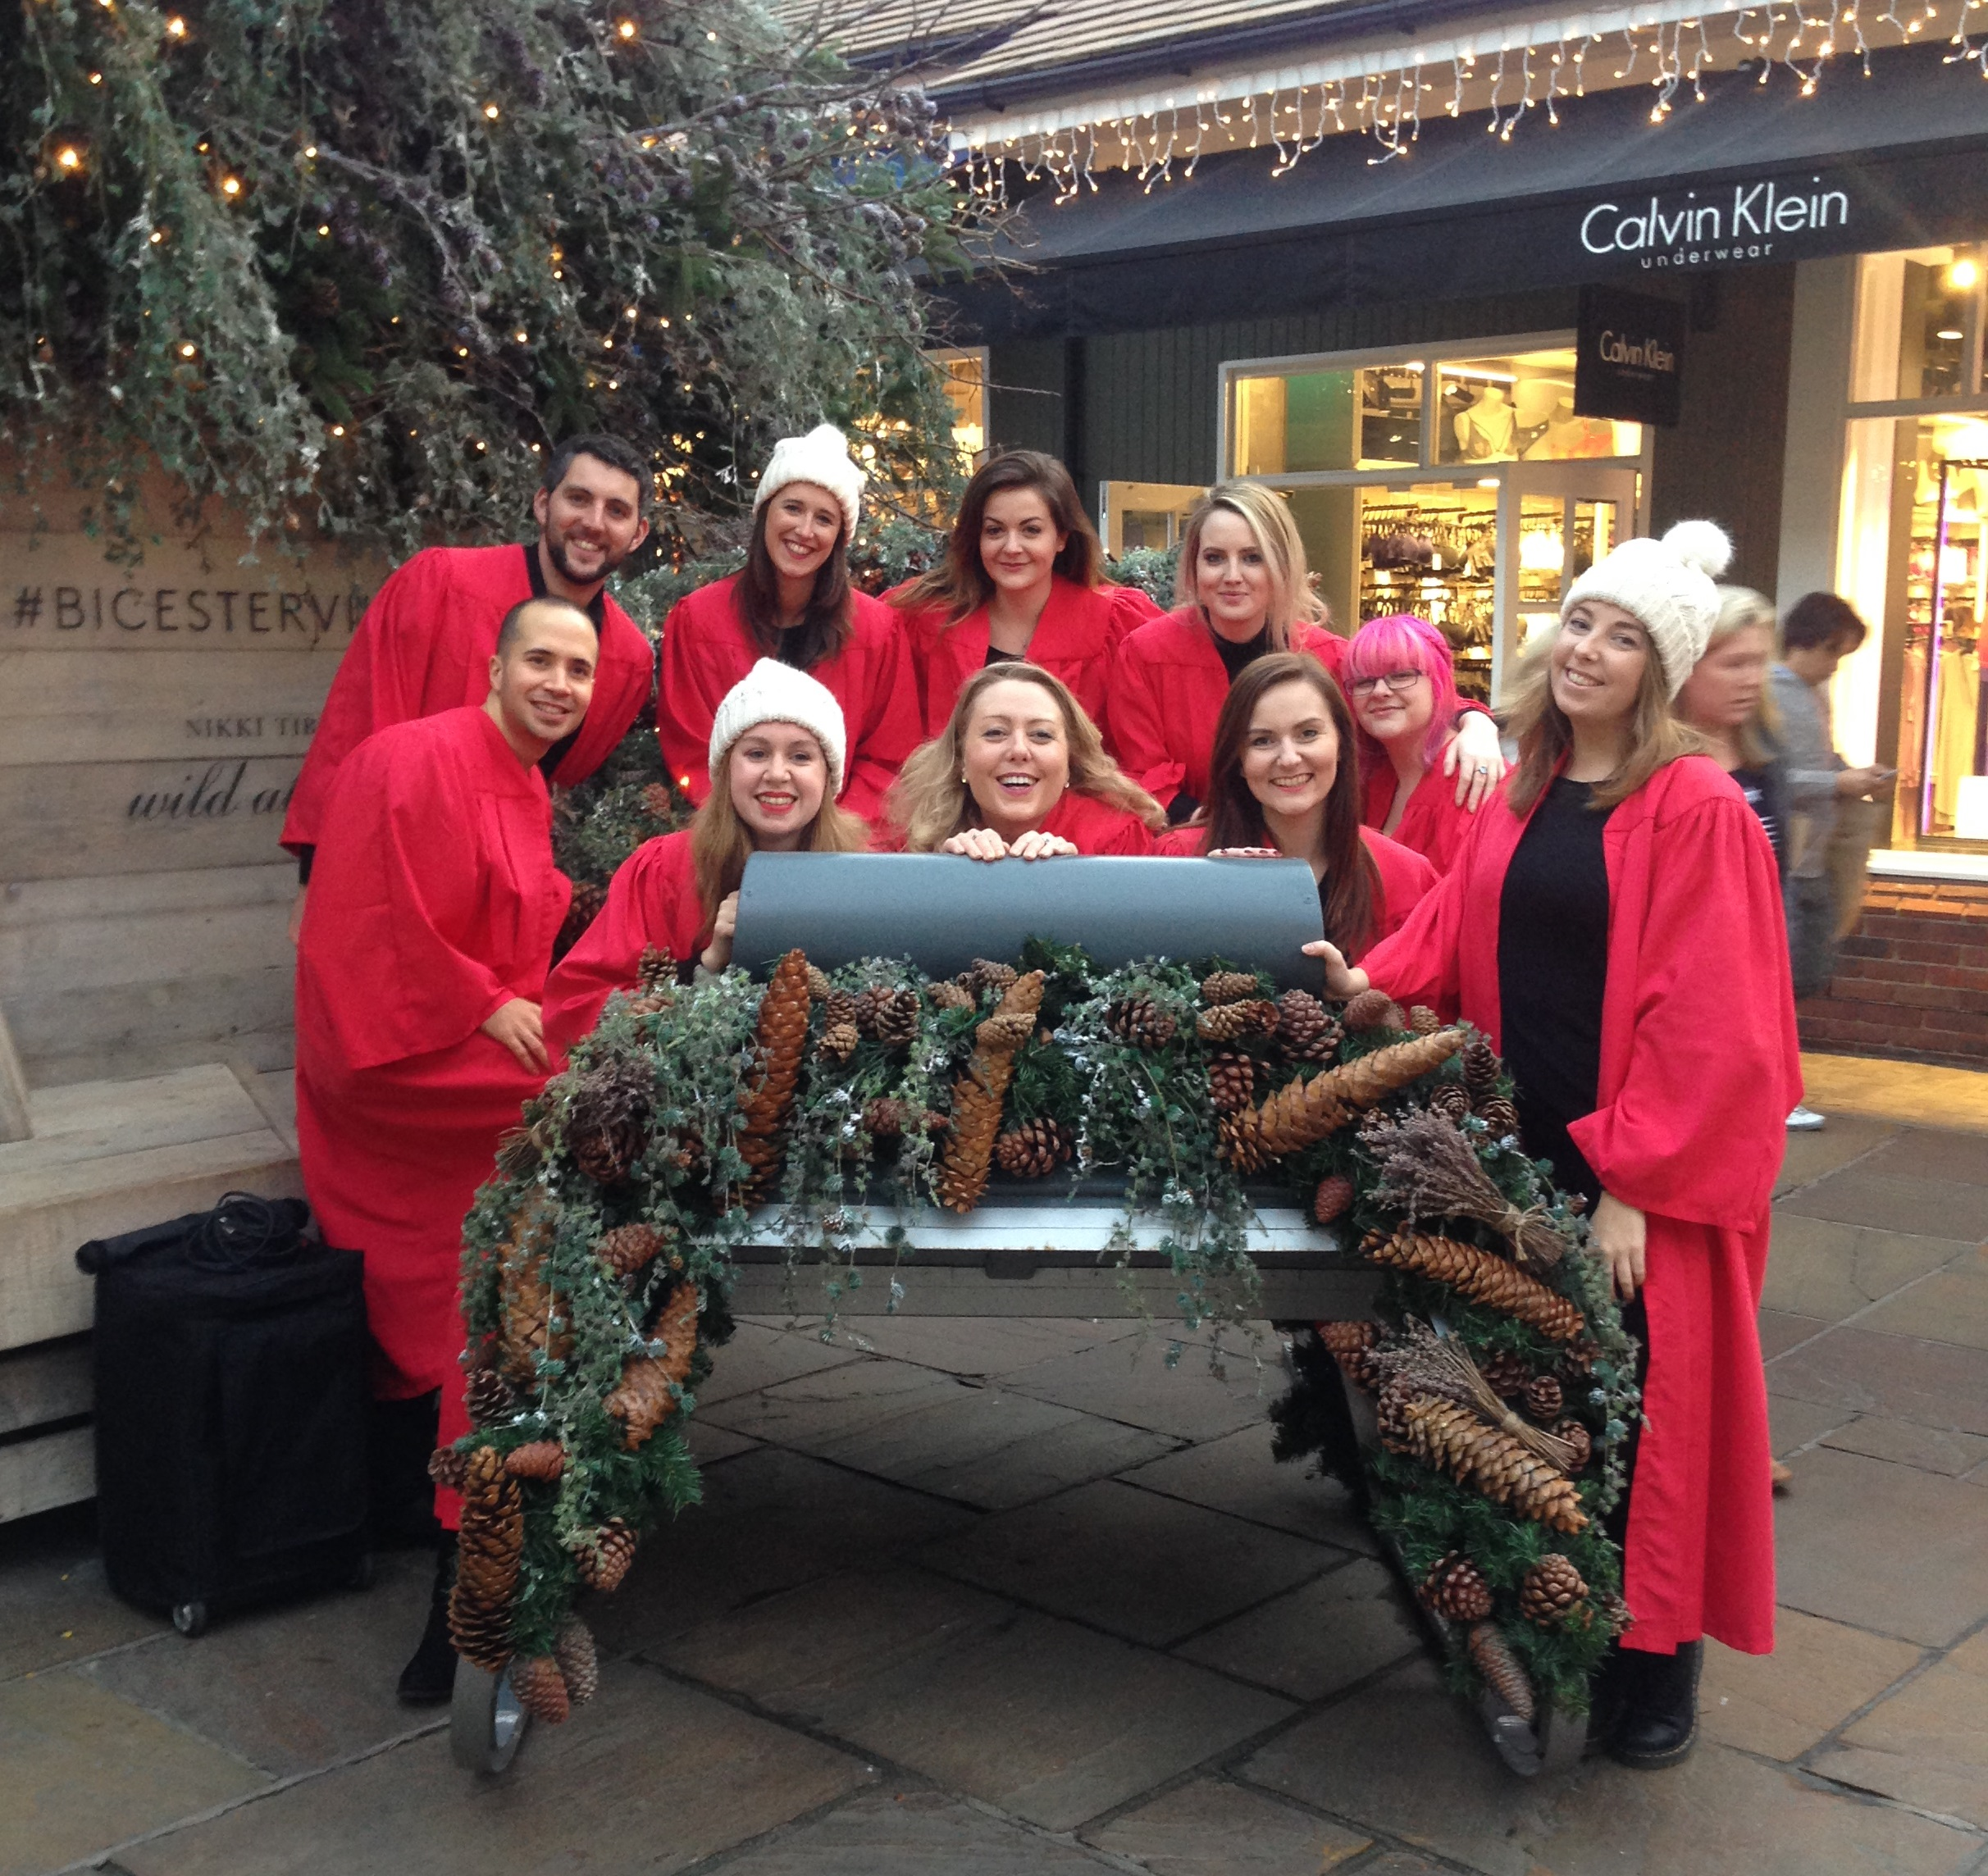 A ten-strong choir in red robes sit on a sleigh decorated in holly and pine-cones